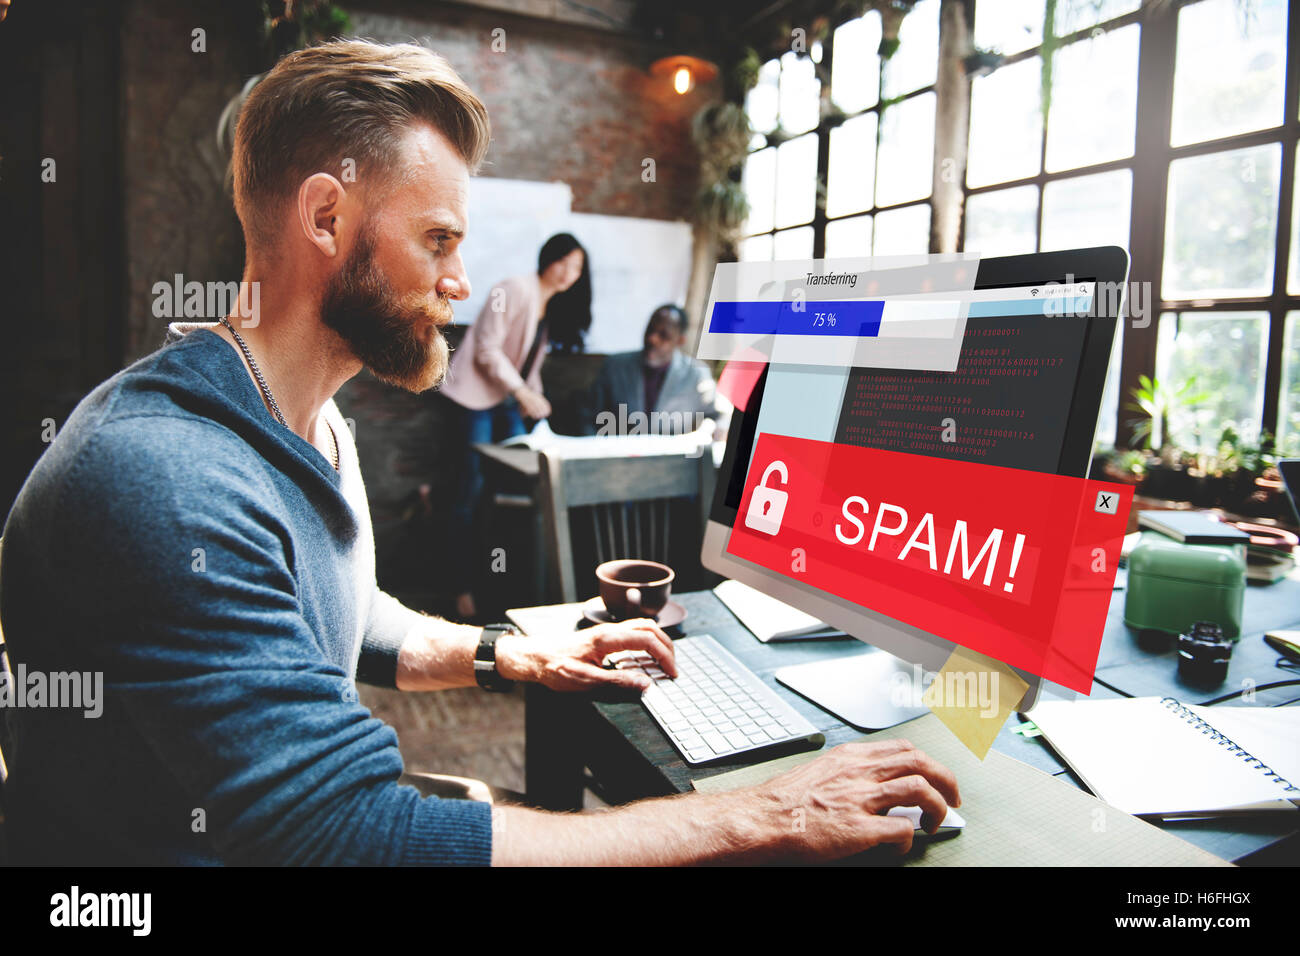 Fraud Hacking Spam Scam Phising Concept - Stock Image